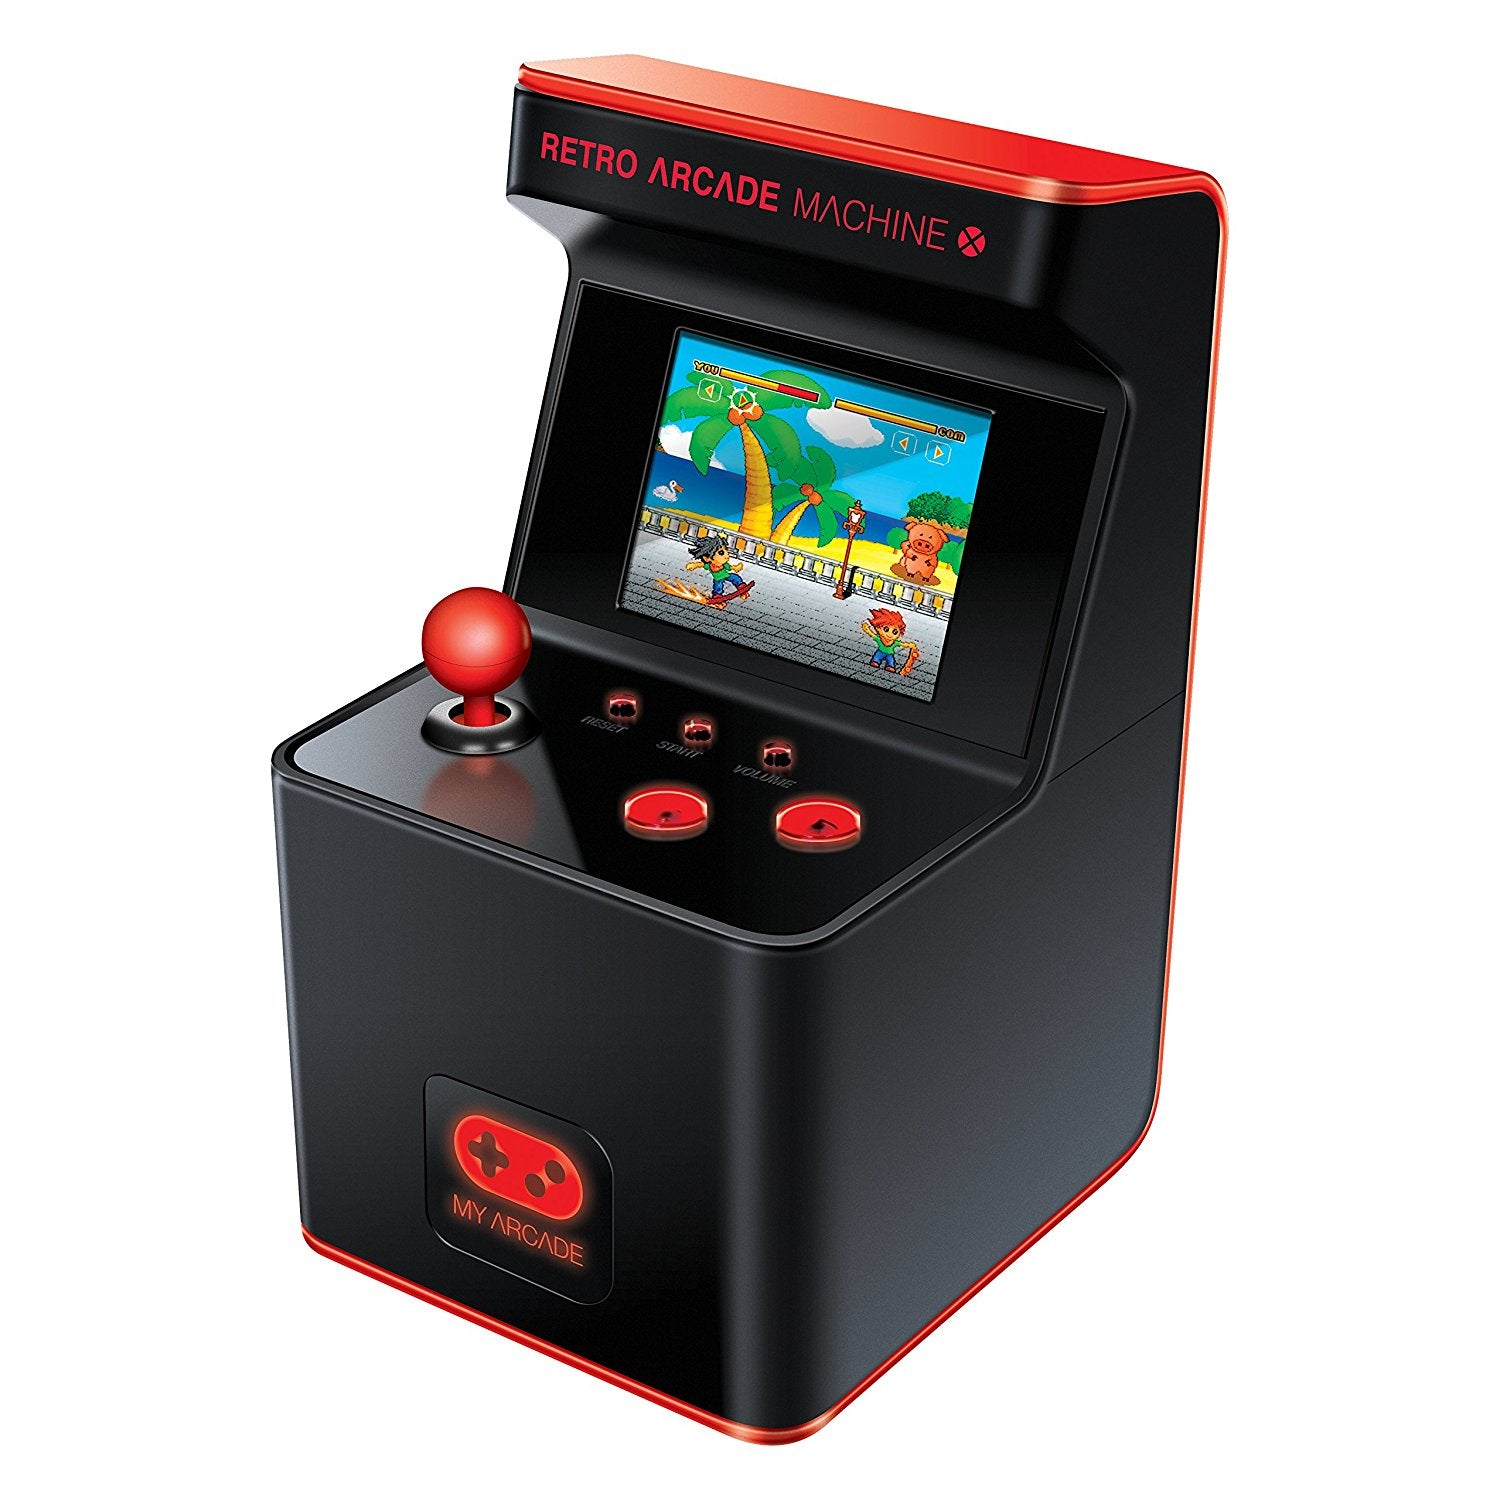 My Arcade DGUN-2593 Portable Retro Machine 16-Bit Mini Cabinet